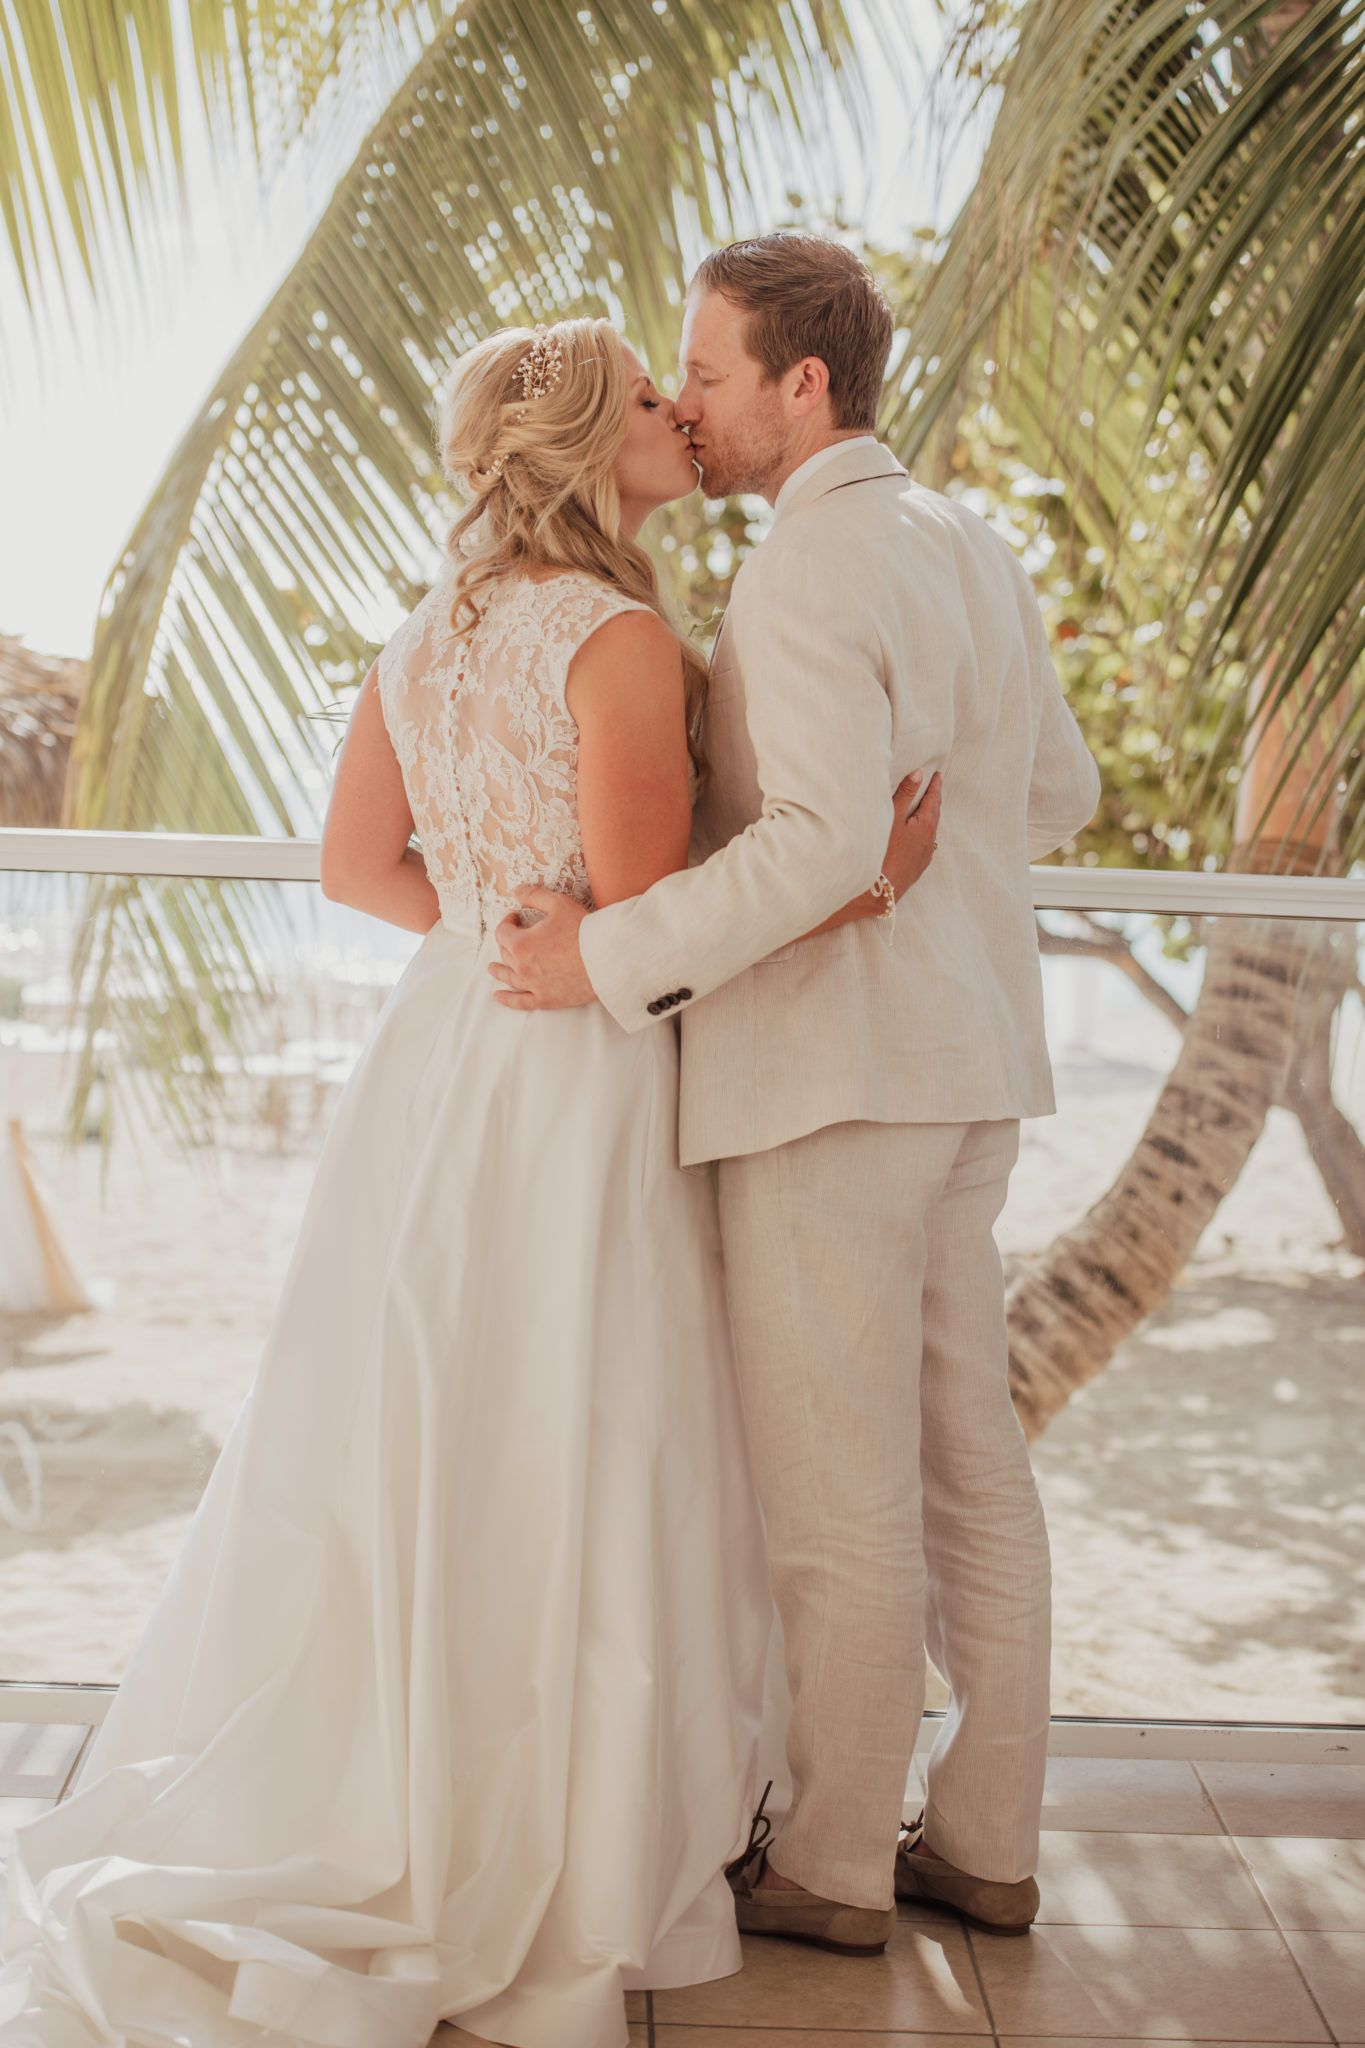 Caribbean wedding dress  Elegant Destination Wedding at the Caribbean Club  Pinterest